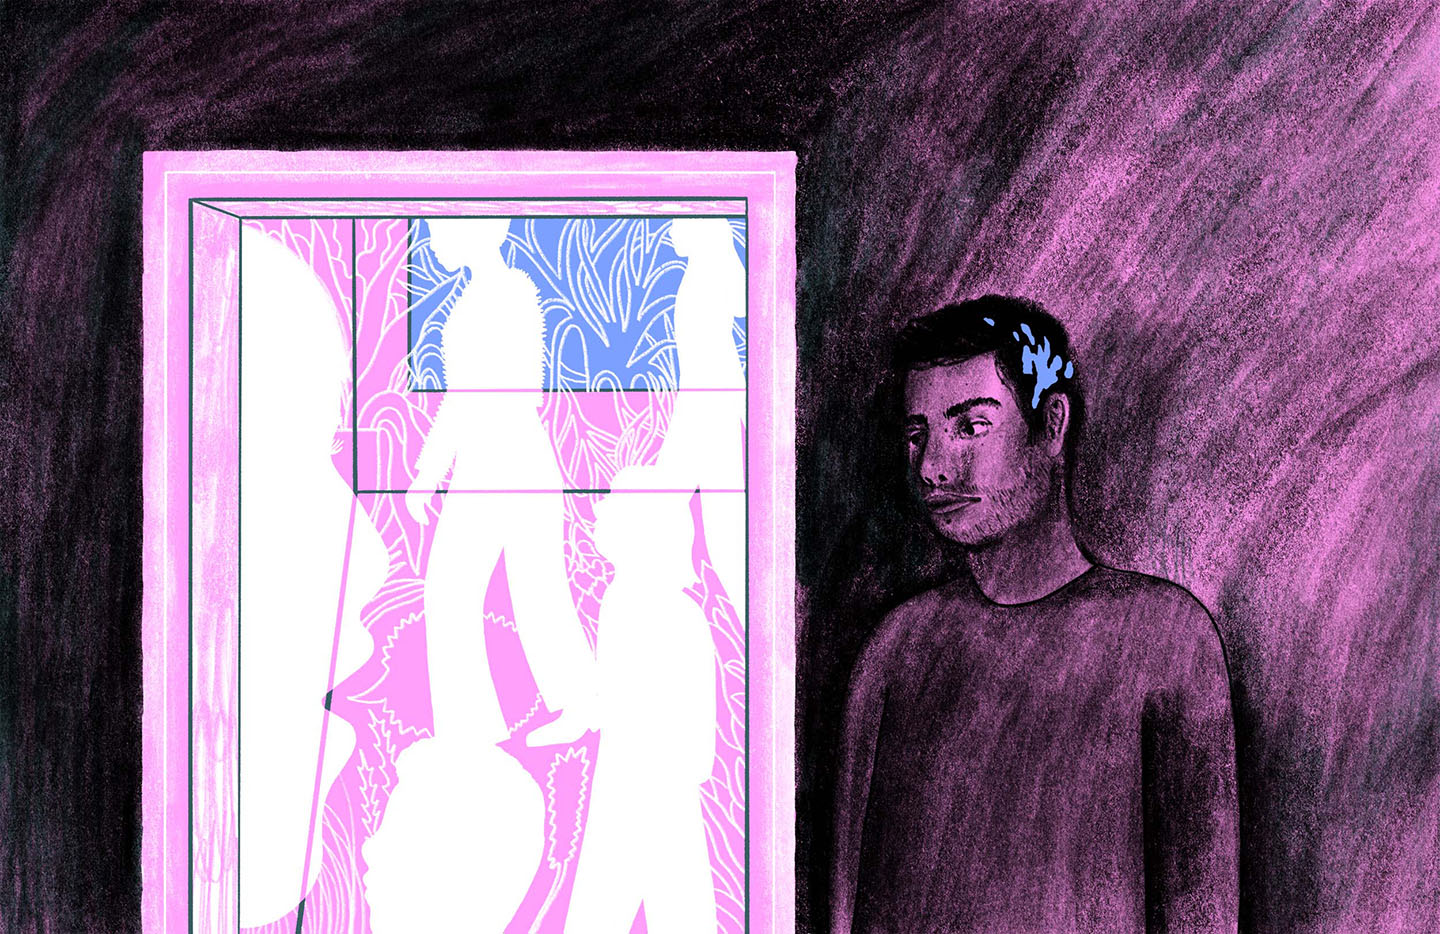 An illustration of a Parkinson's sufferer experiencing hallucinations.